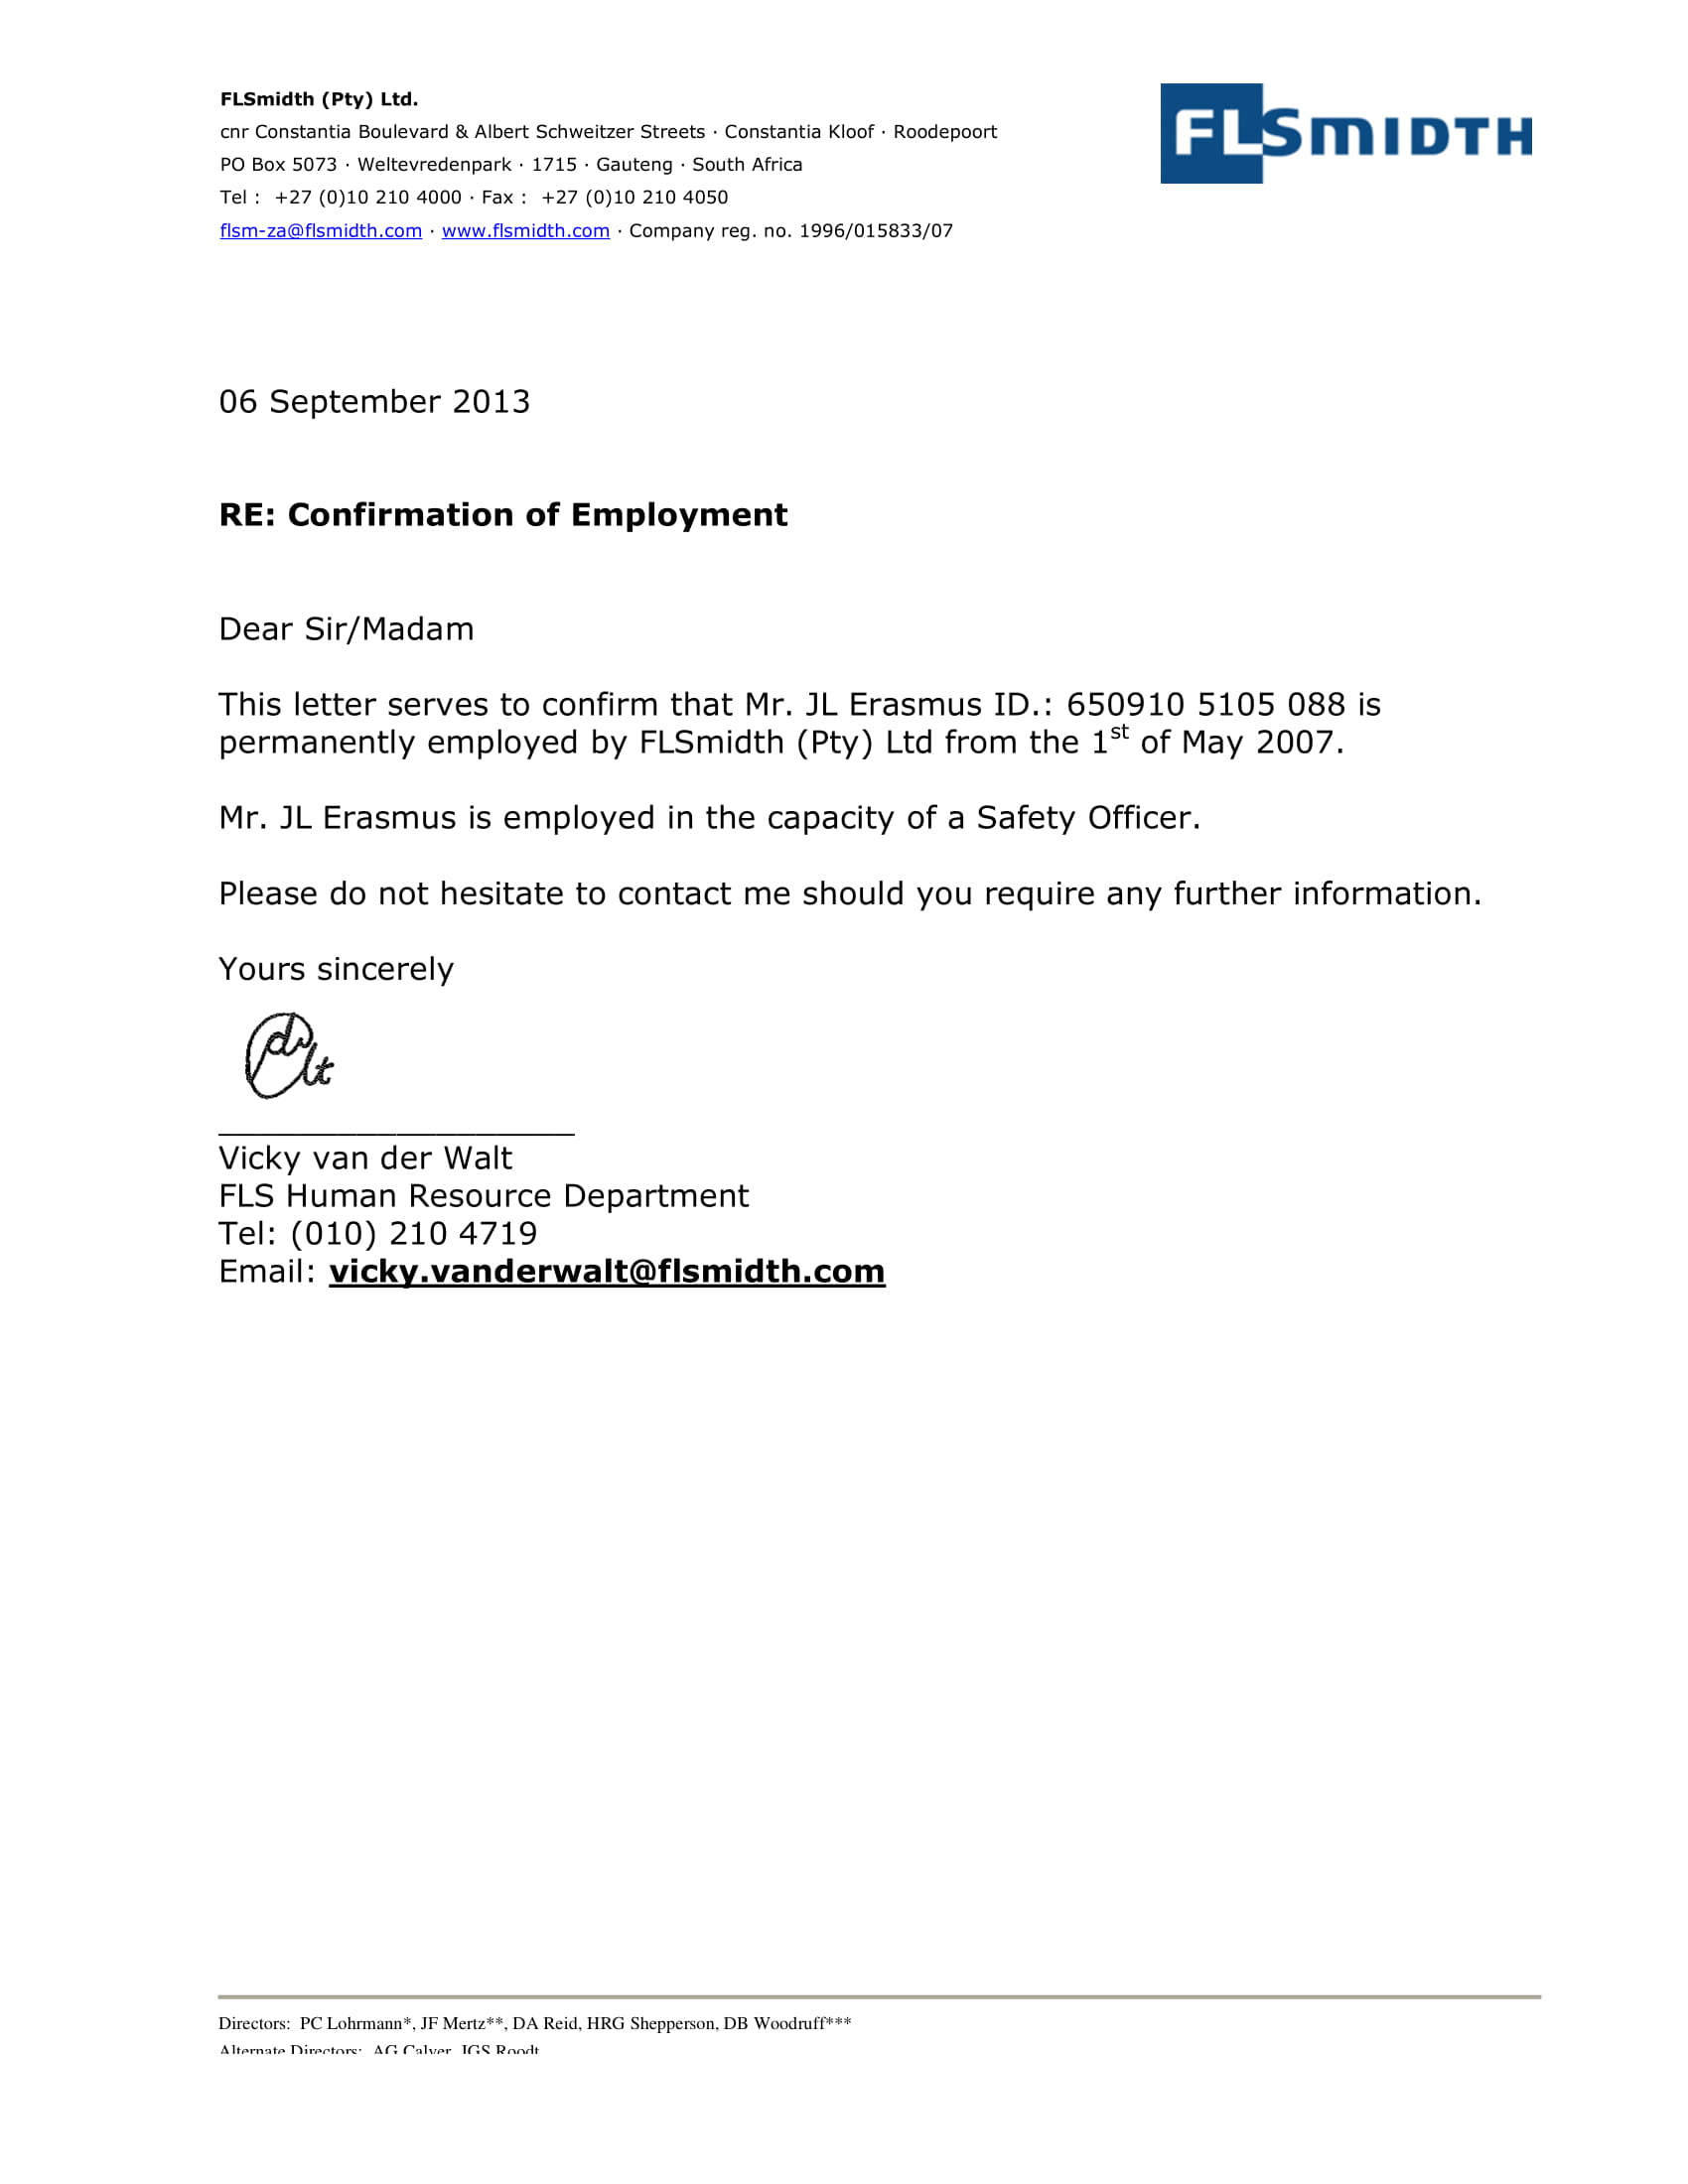 confirmation verification of employment letter example